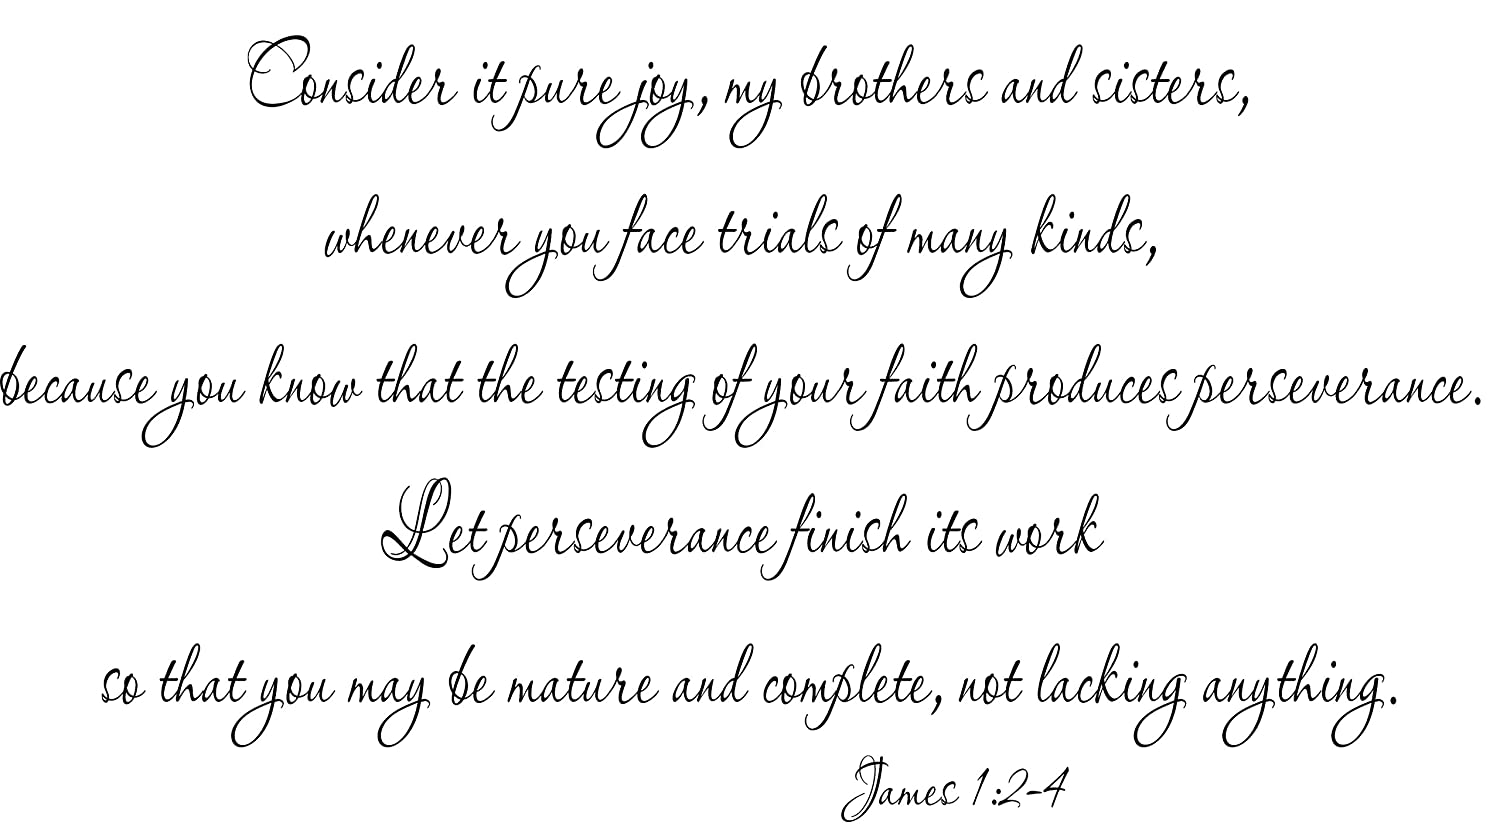 James 12 4 vinyl wall decal consider it pure joy my brothers and sisters whenever you face trials of many kinds produces perseverance finish its work